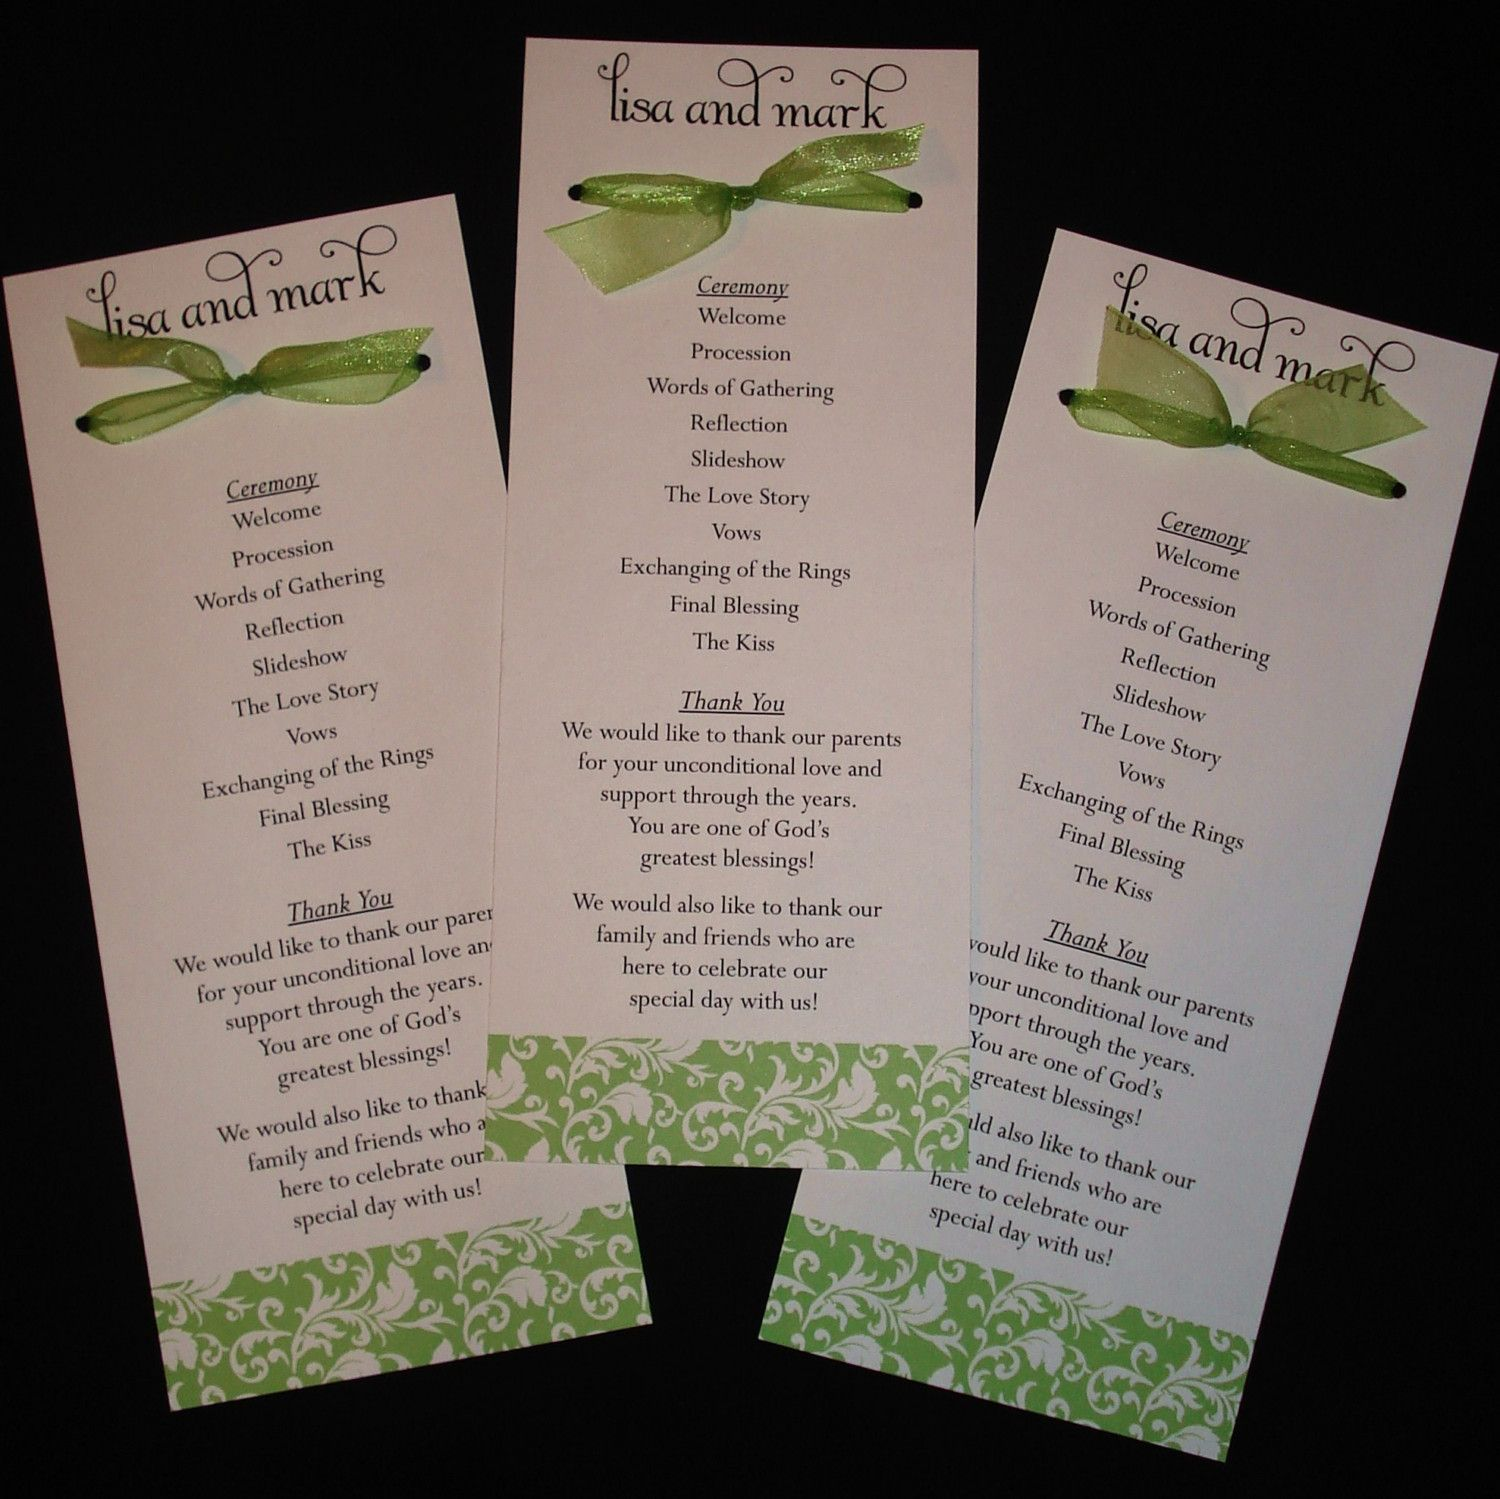 17 Best images about wedding ceremony programs on Pinterest ...